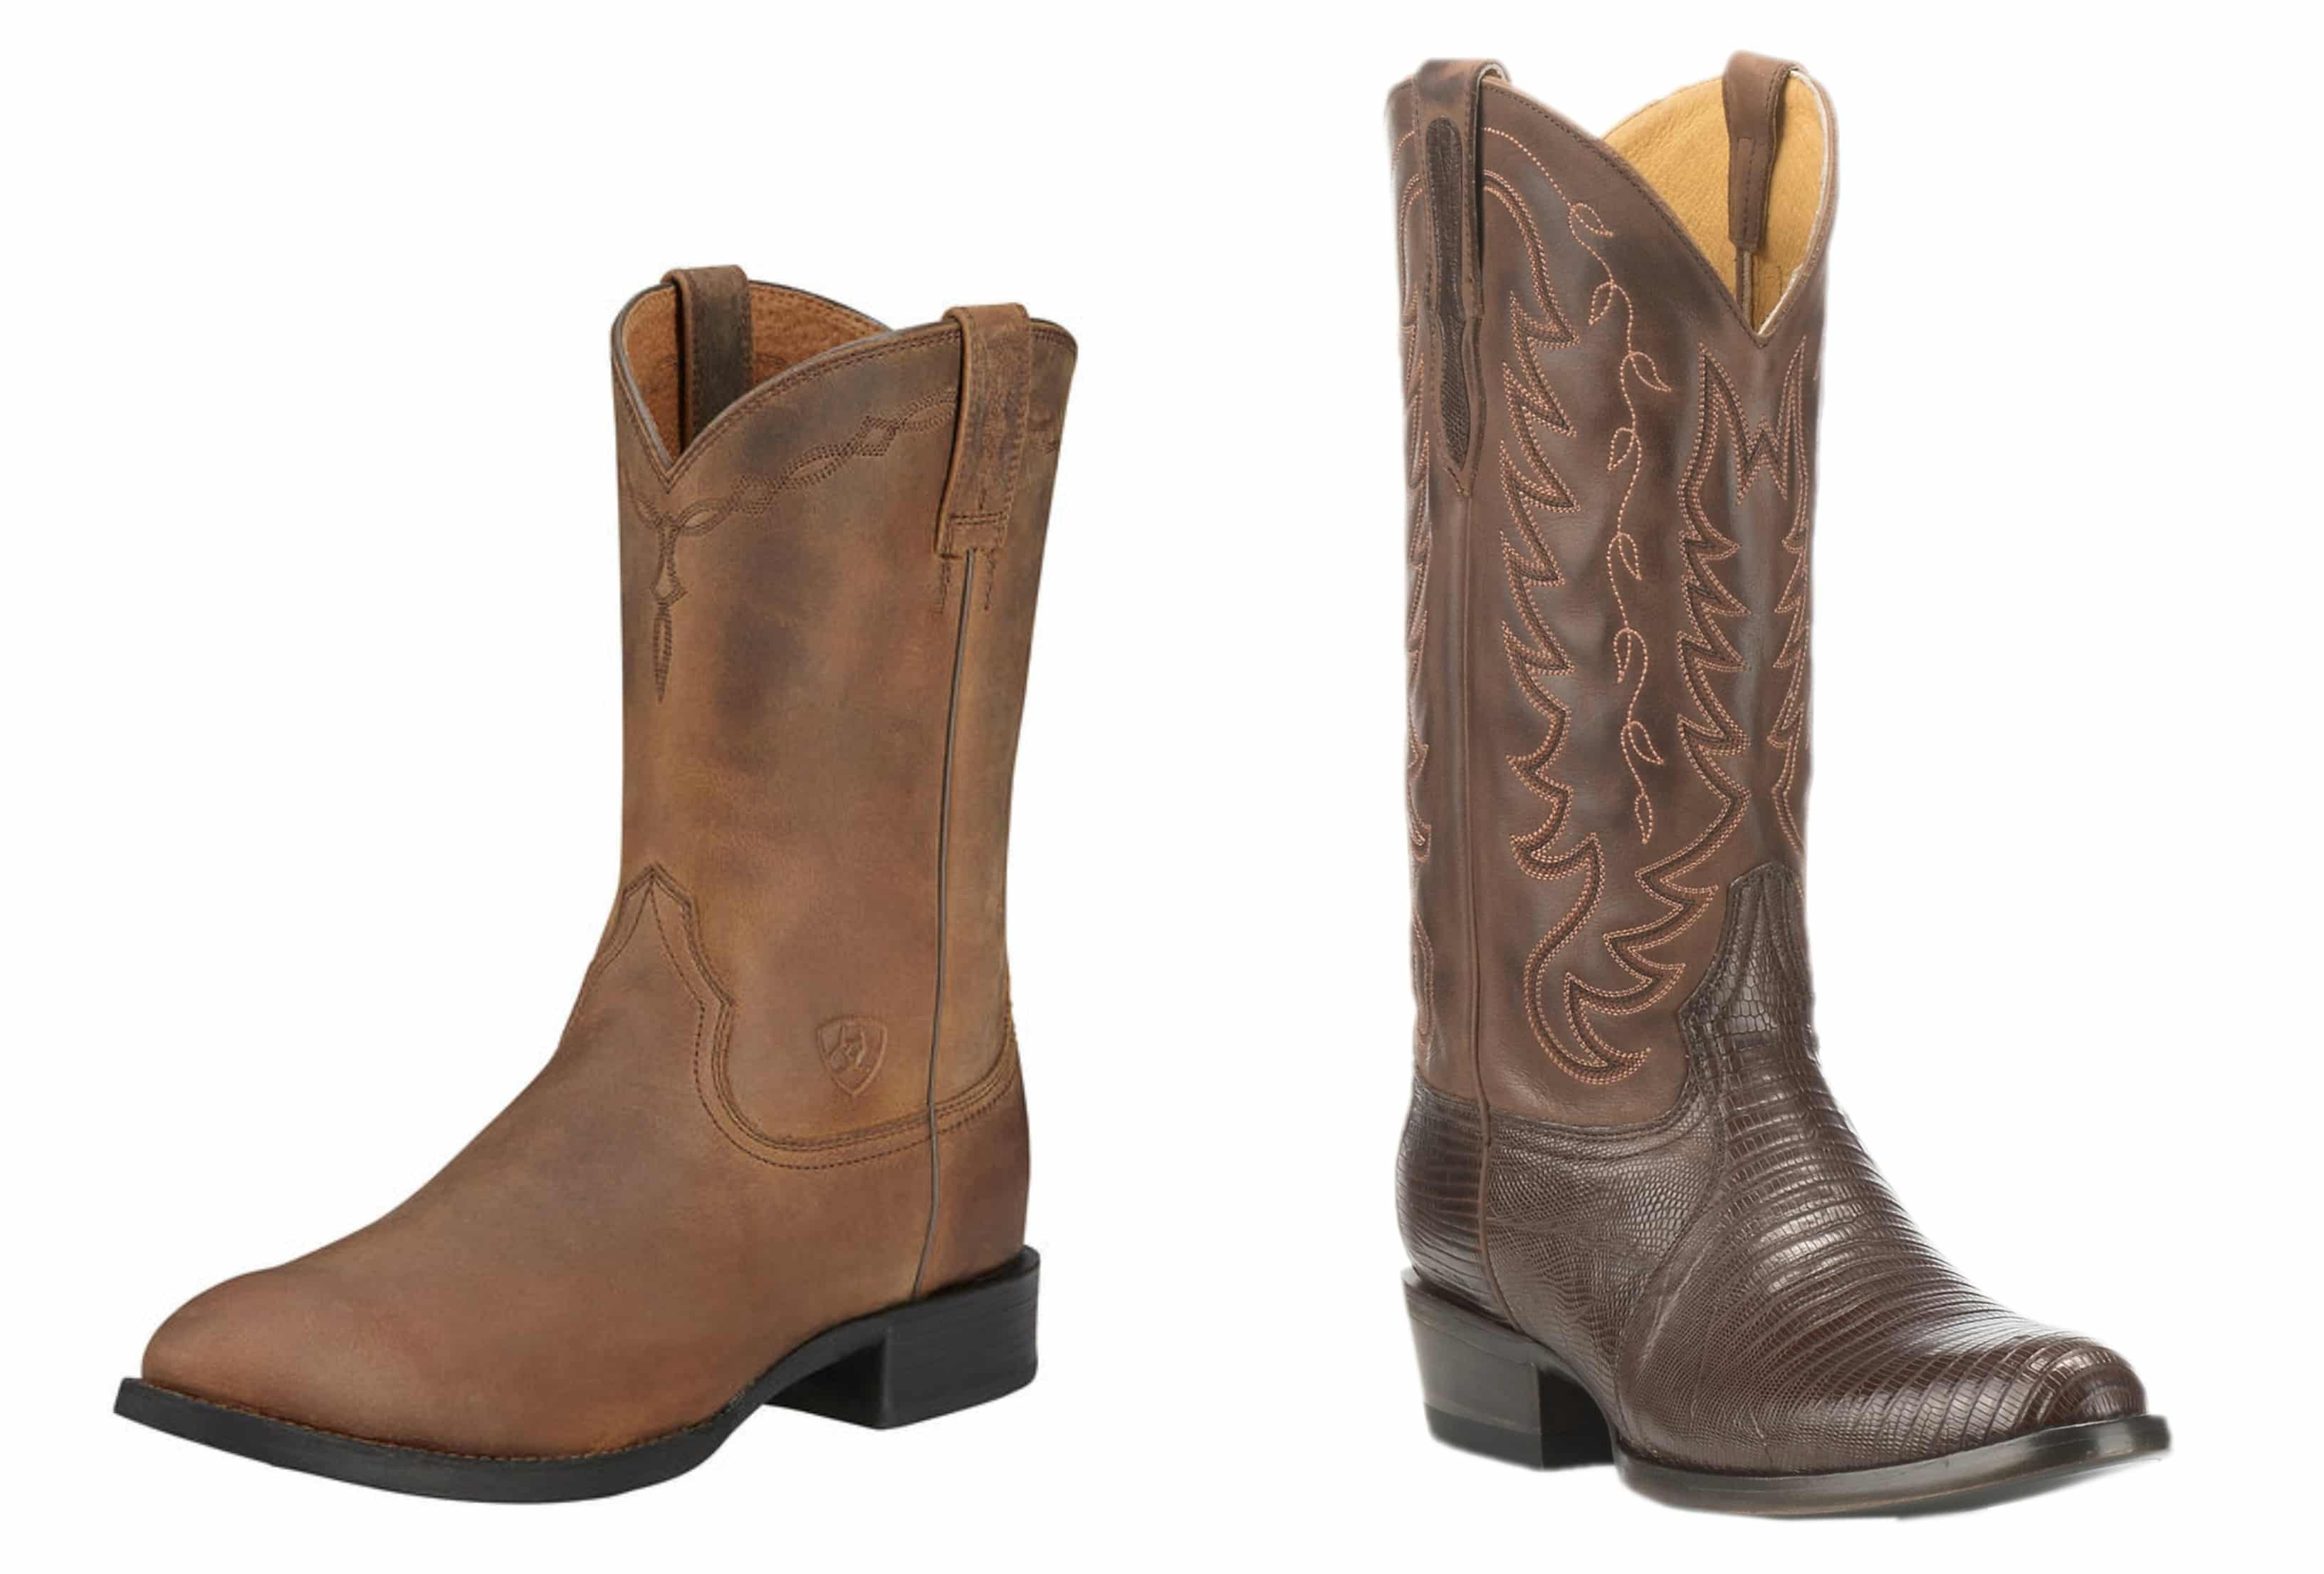 fd302019ca0 How to Buy Cowboy Boots - Mocha Man Style